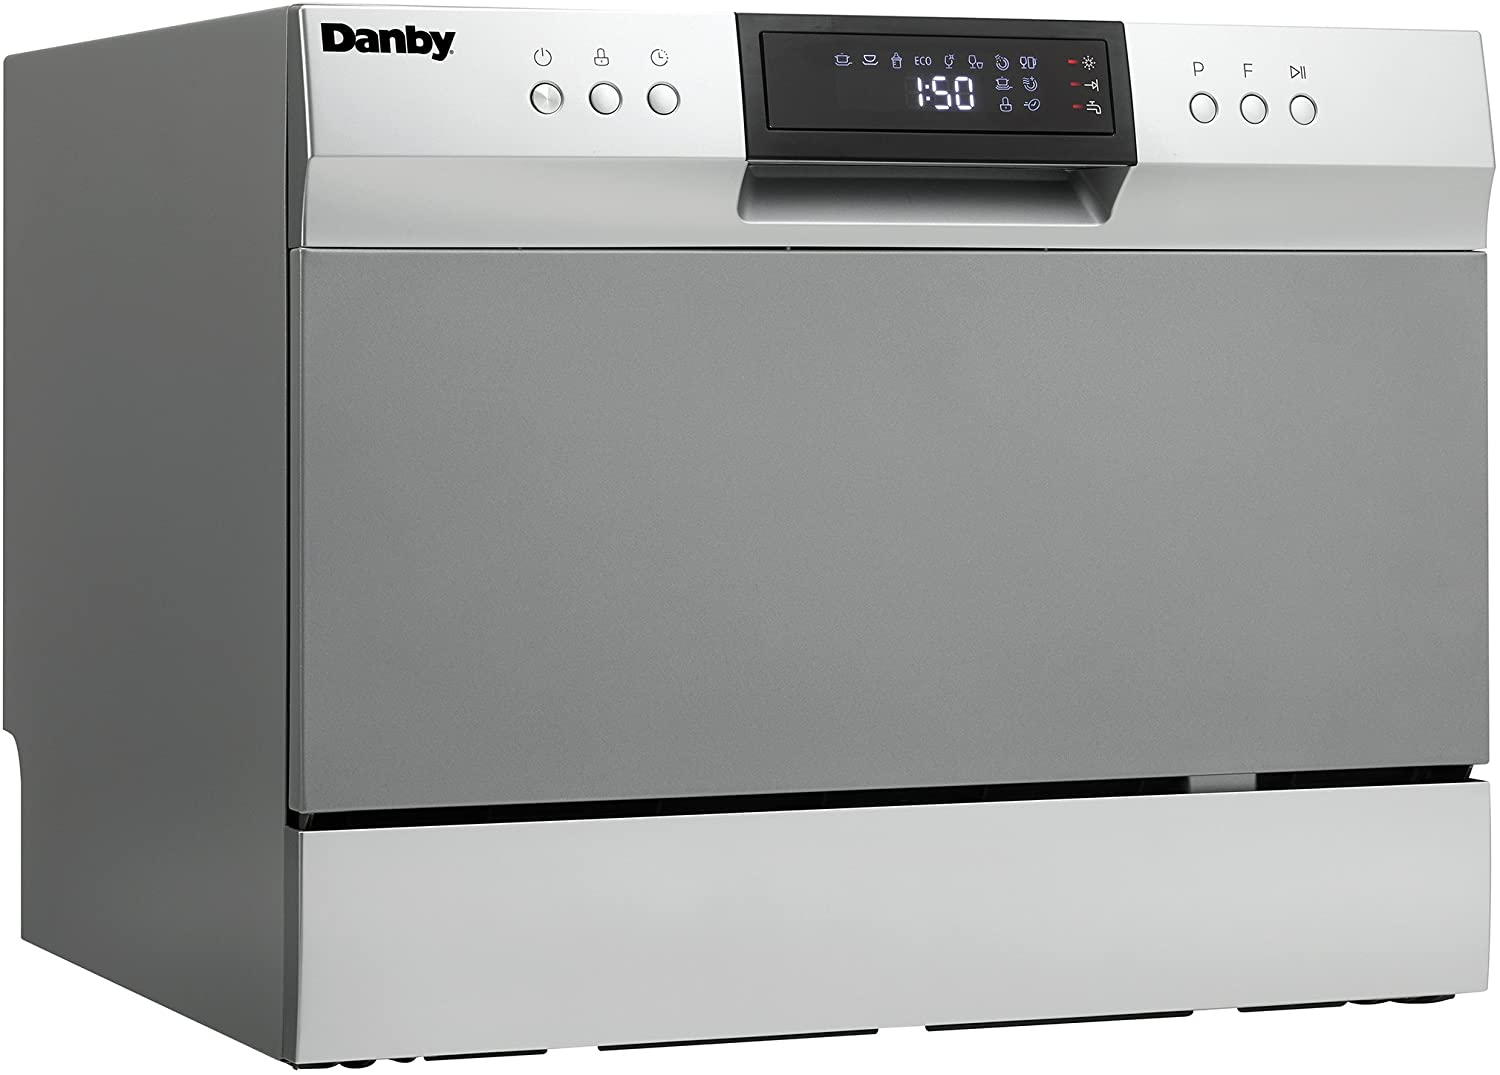 10 BEST Cheap Portable Dishwashers of March 2020 19